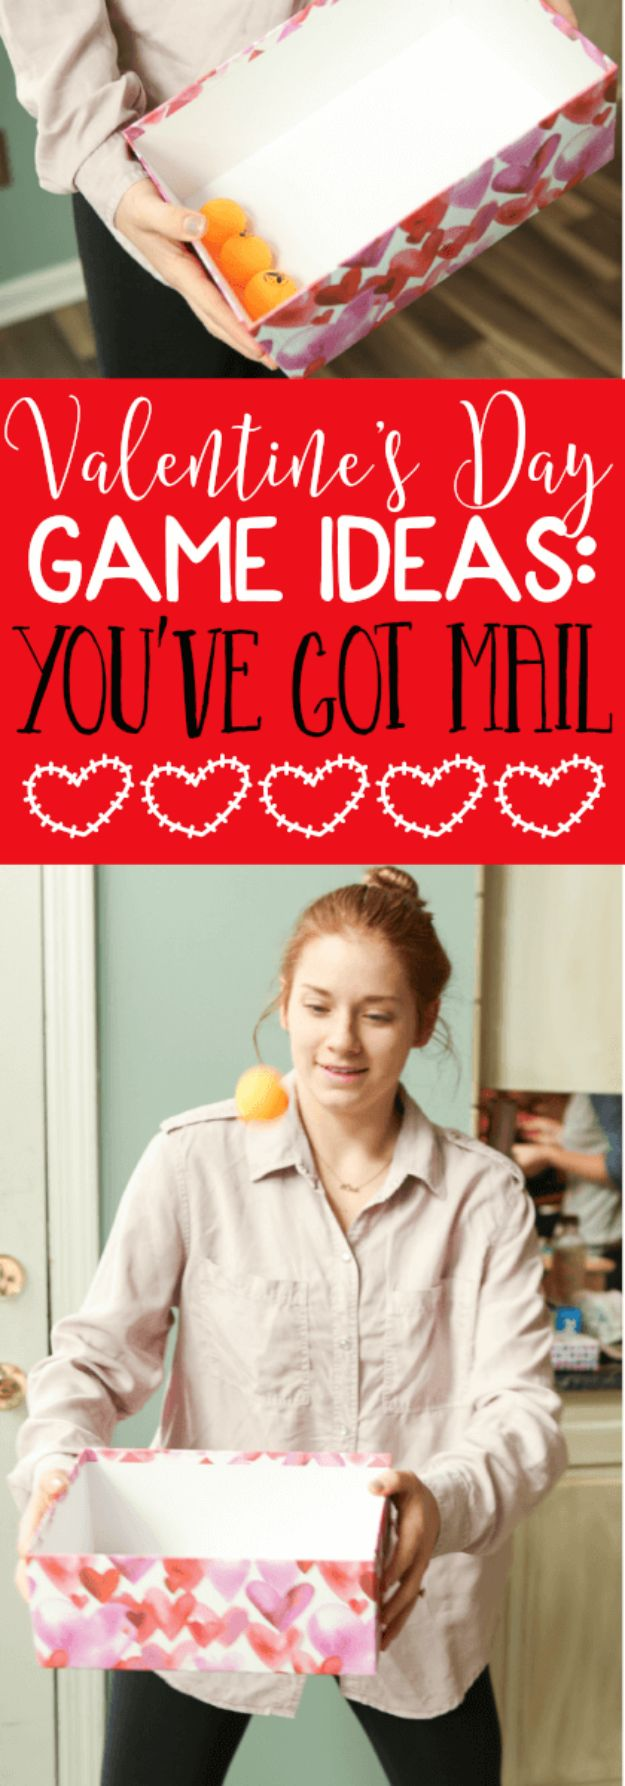 Cool Games To Make for Valentines Day - You've Got Mail - Cheap and Easy Crafts For Valentine Parties - Ideas for Kids and Adults to Play Bingo, Matching, Free Printables and Cute Game Projects With Hearts, Red and Pink Art Ideas - Adorable Fun for The Holiday Celebrations #valentine #valentinesday